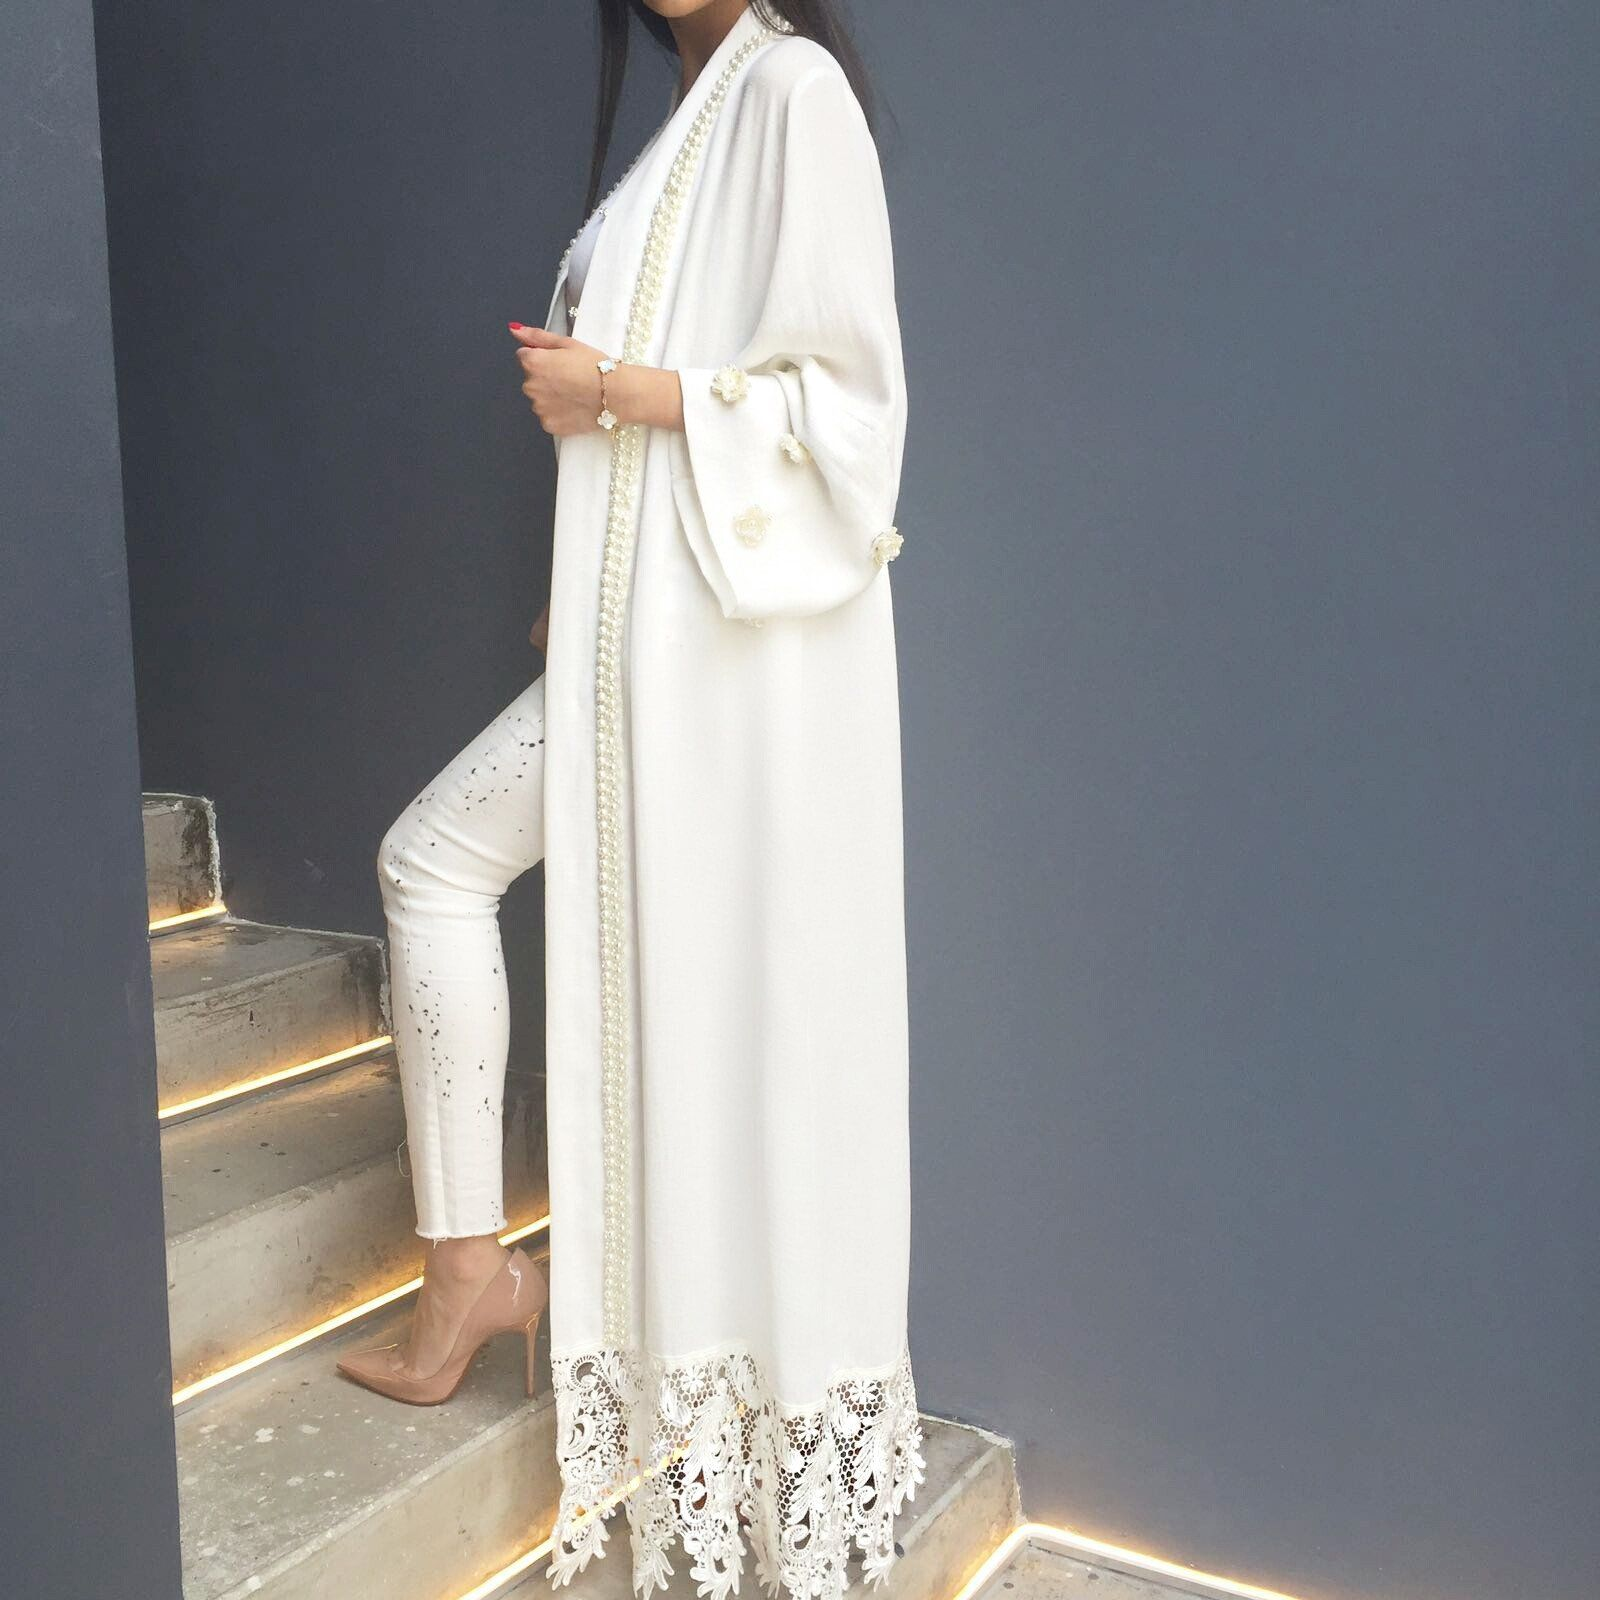 Silver pearl marisol white lace 1 - Limited Edition Linen White Abaya With Pearls French Lace